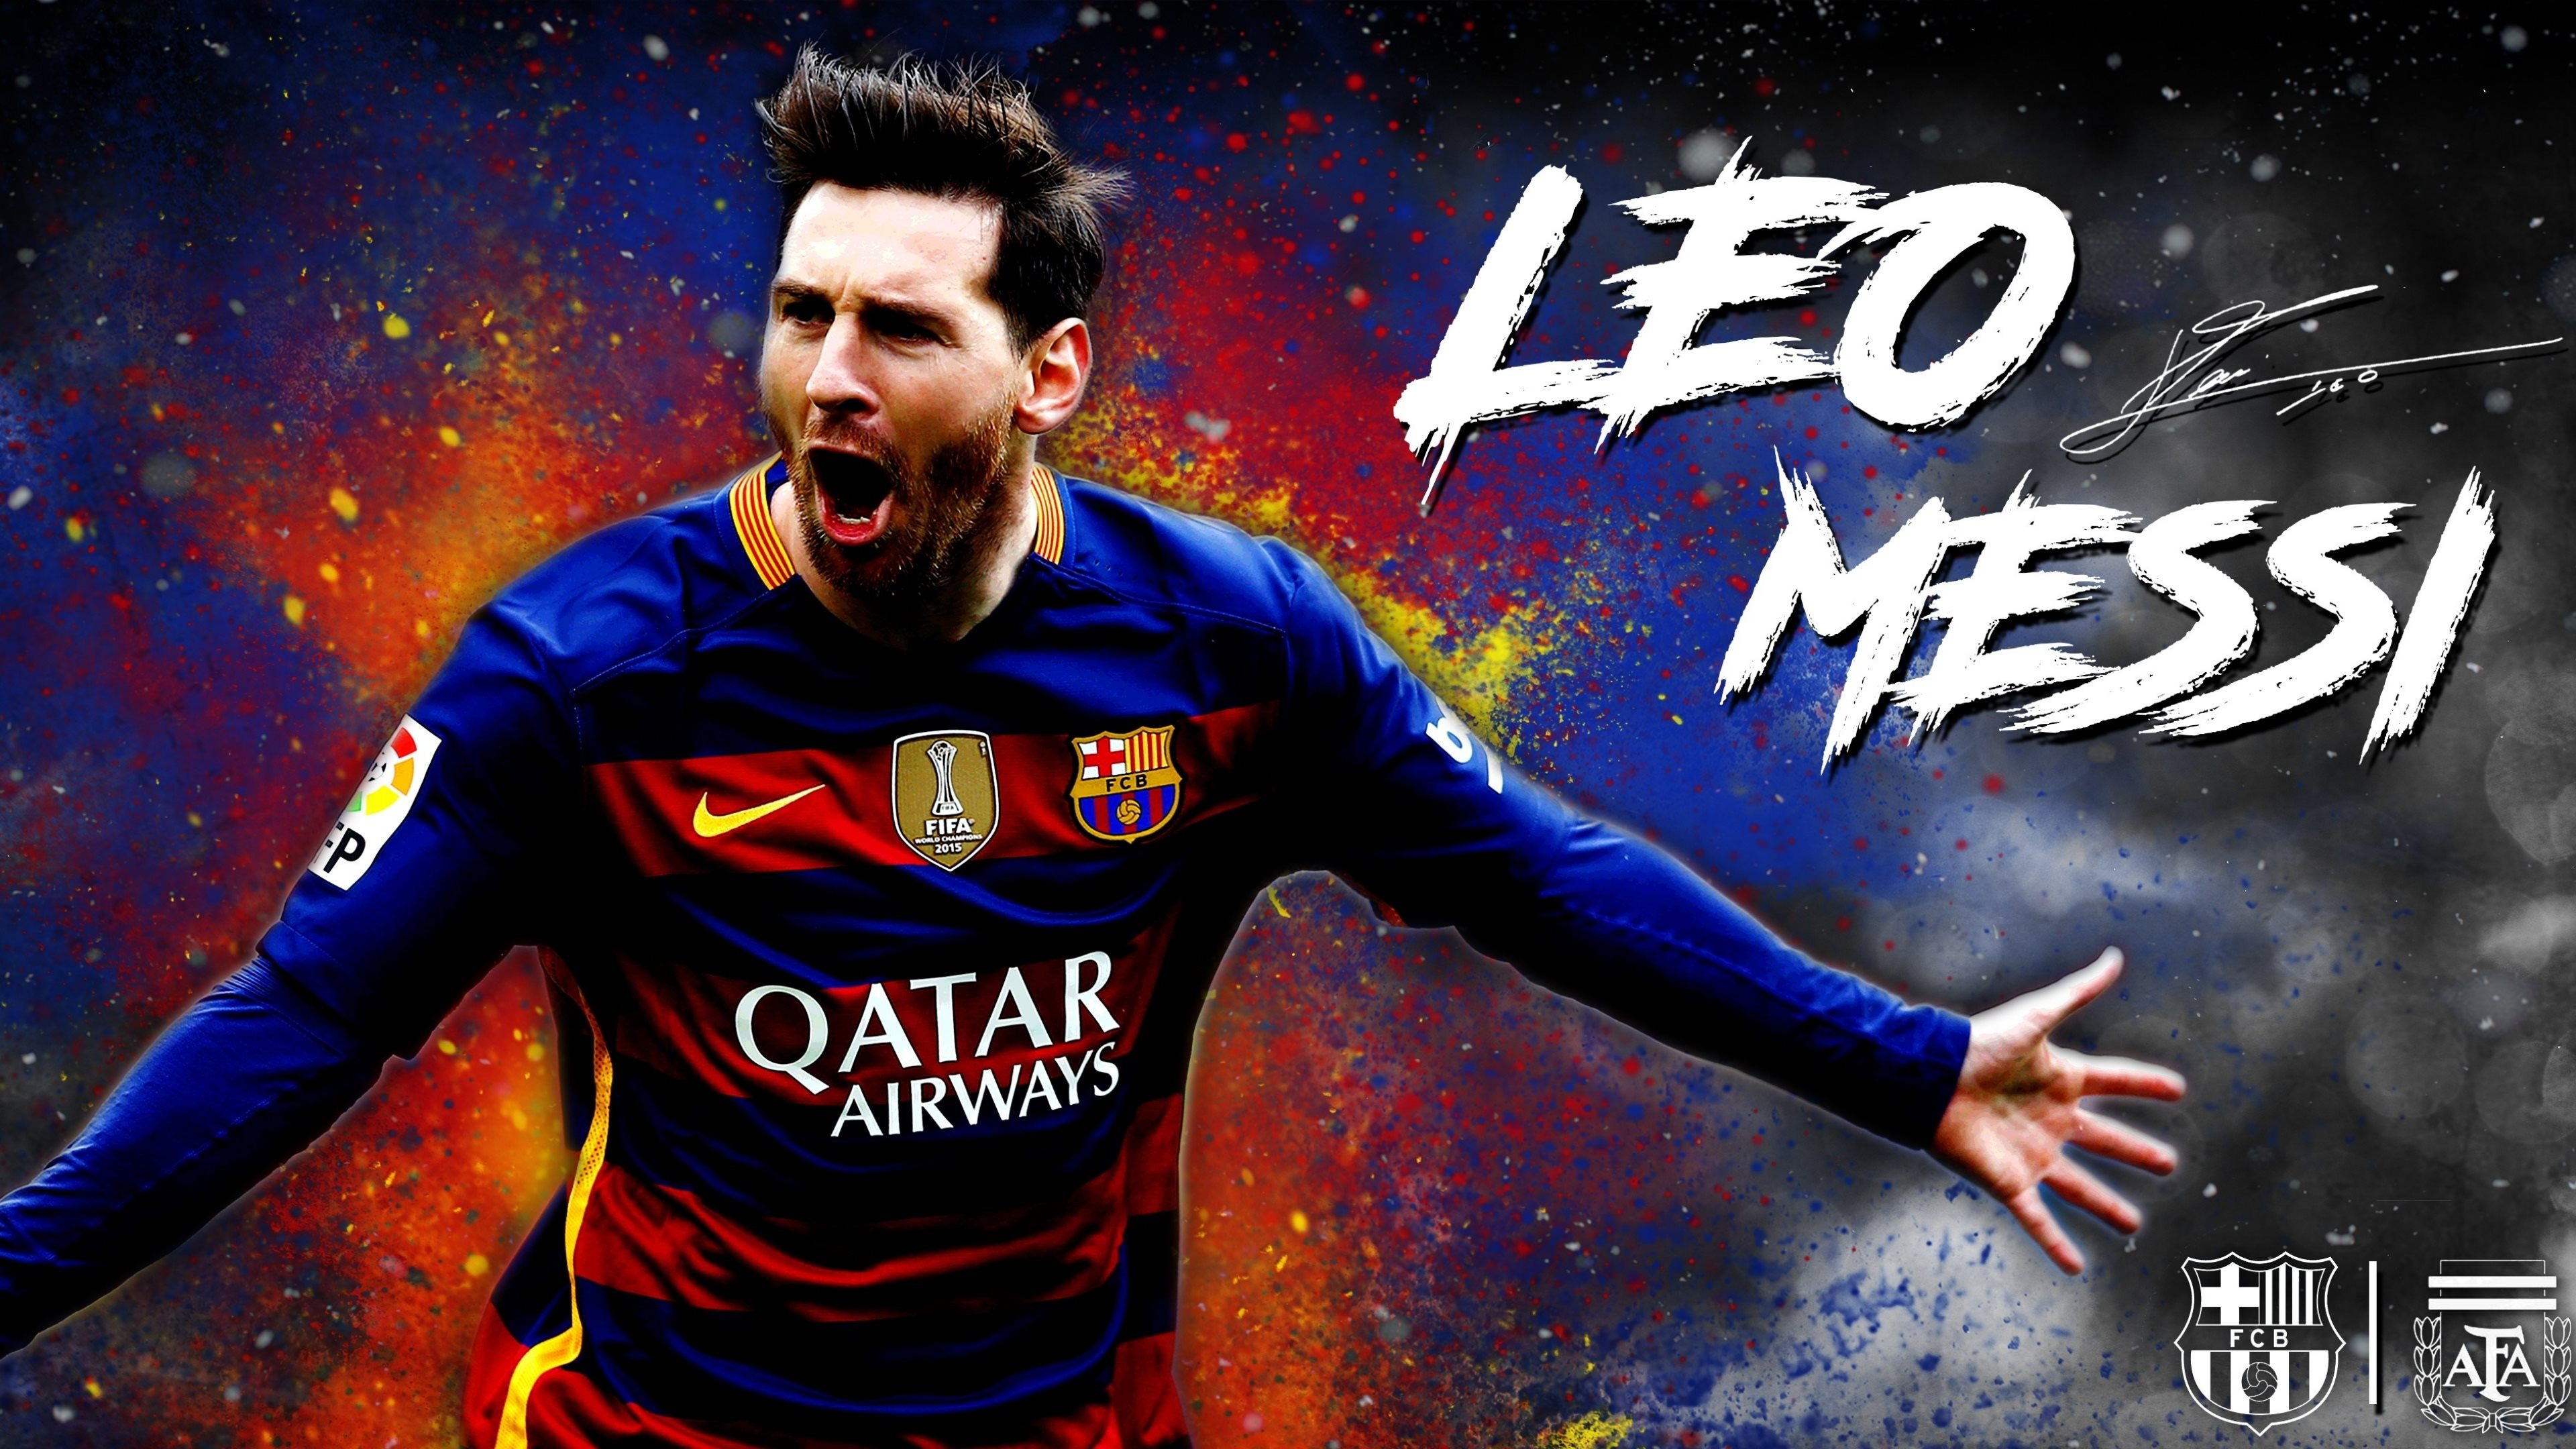 Lionel Messi Photo Footballer Wallpaper 4k HD 3840x2160